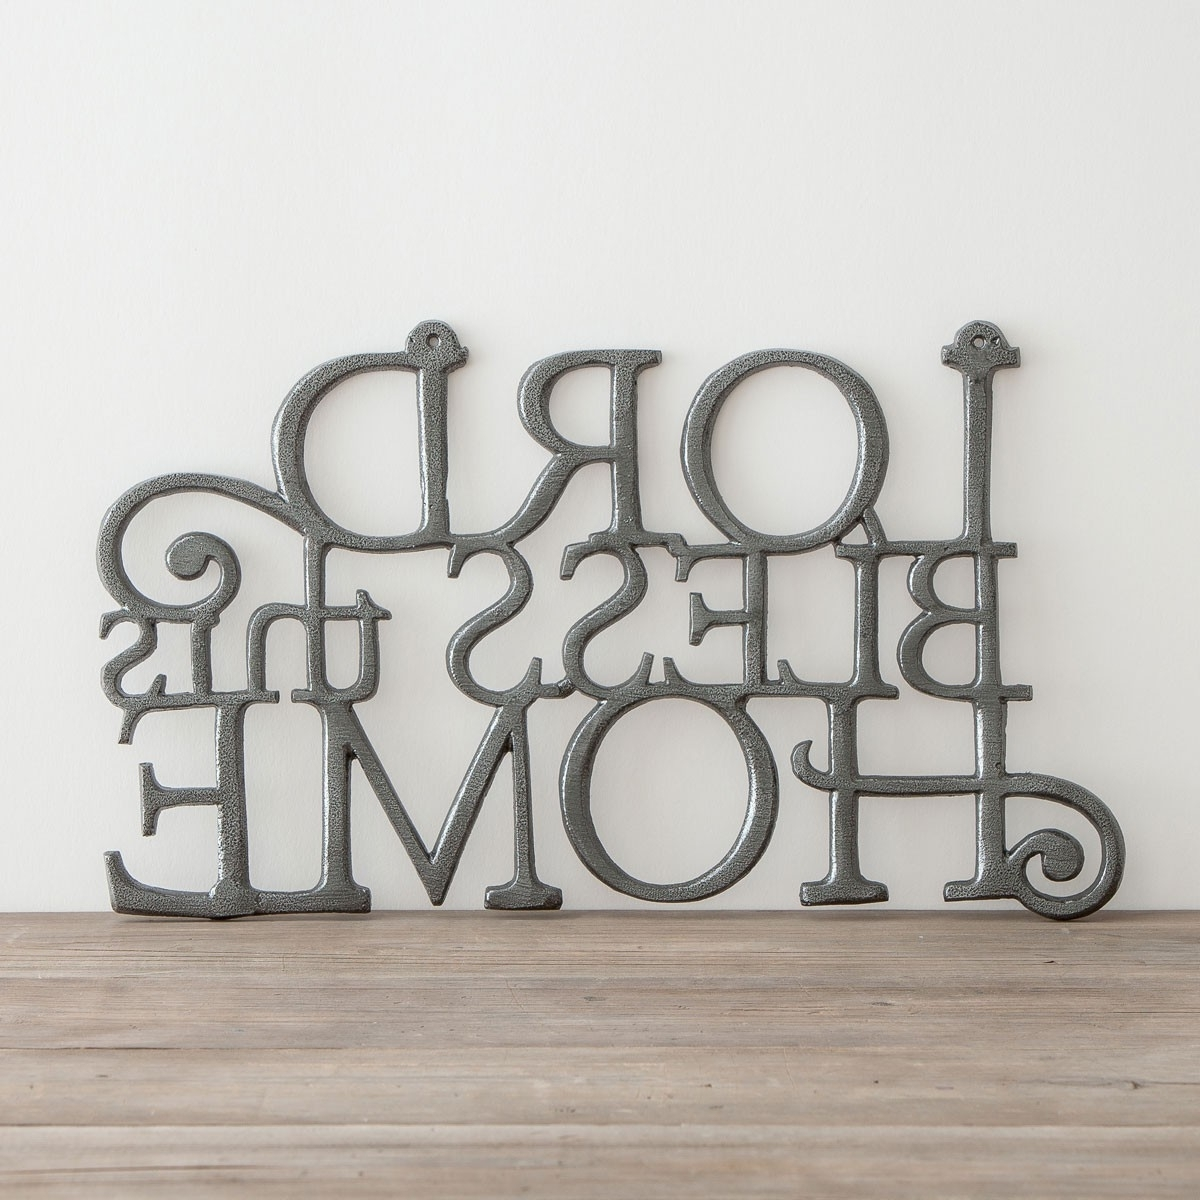 3D Wall Art Words Throughout Most Recent Wall Art Designs: Home Wall Art Words Grey Wall Art Quotes Home (View 5 of 15)